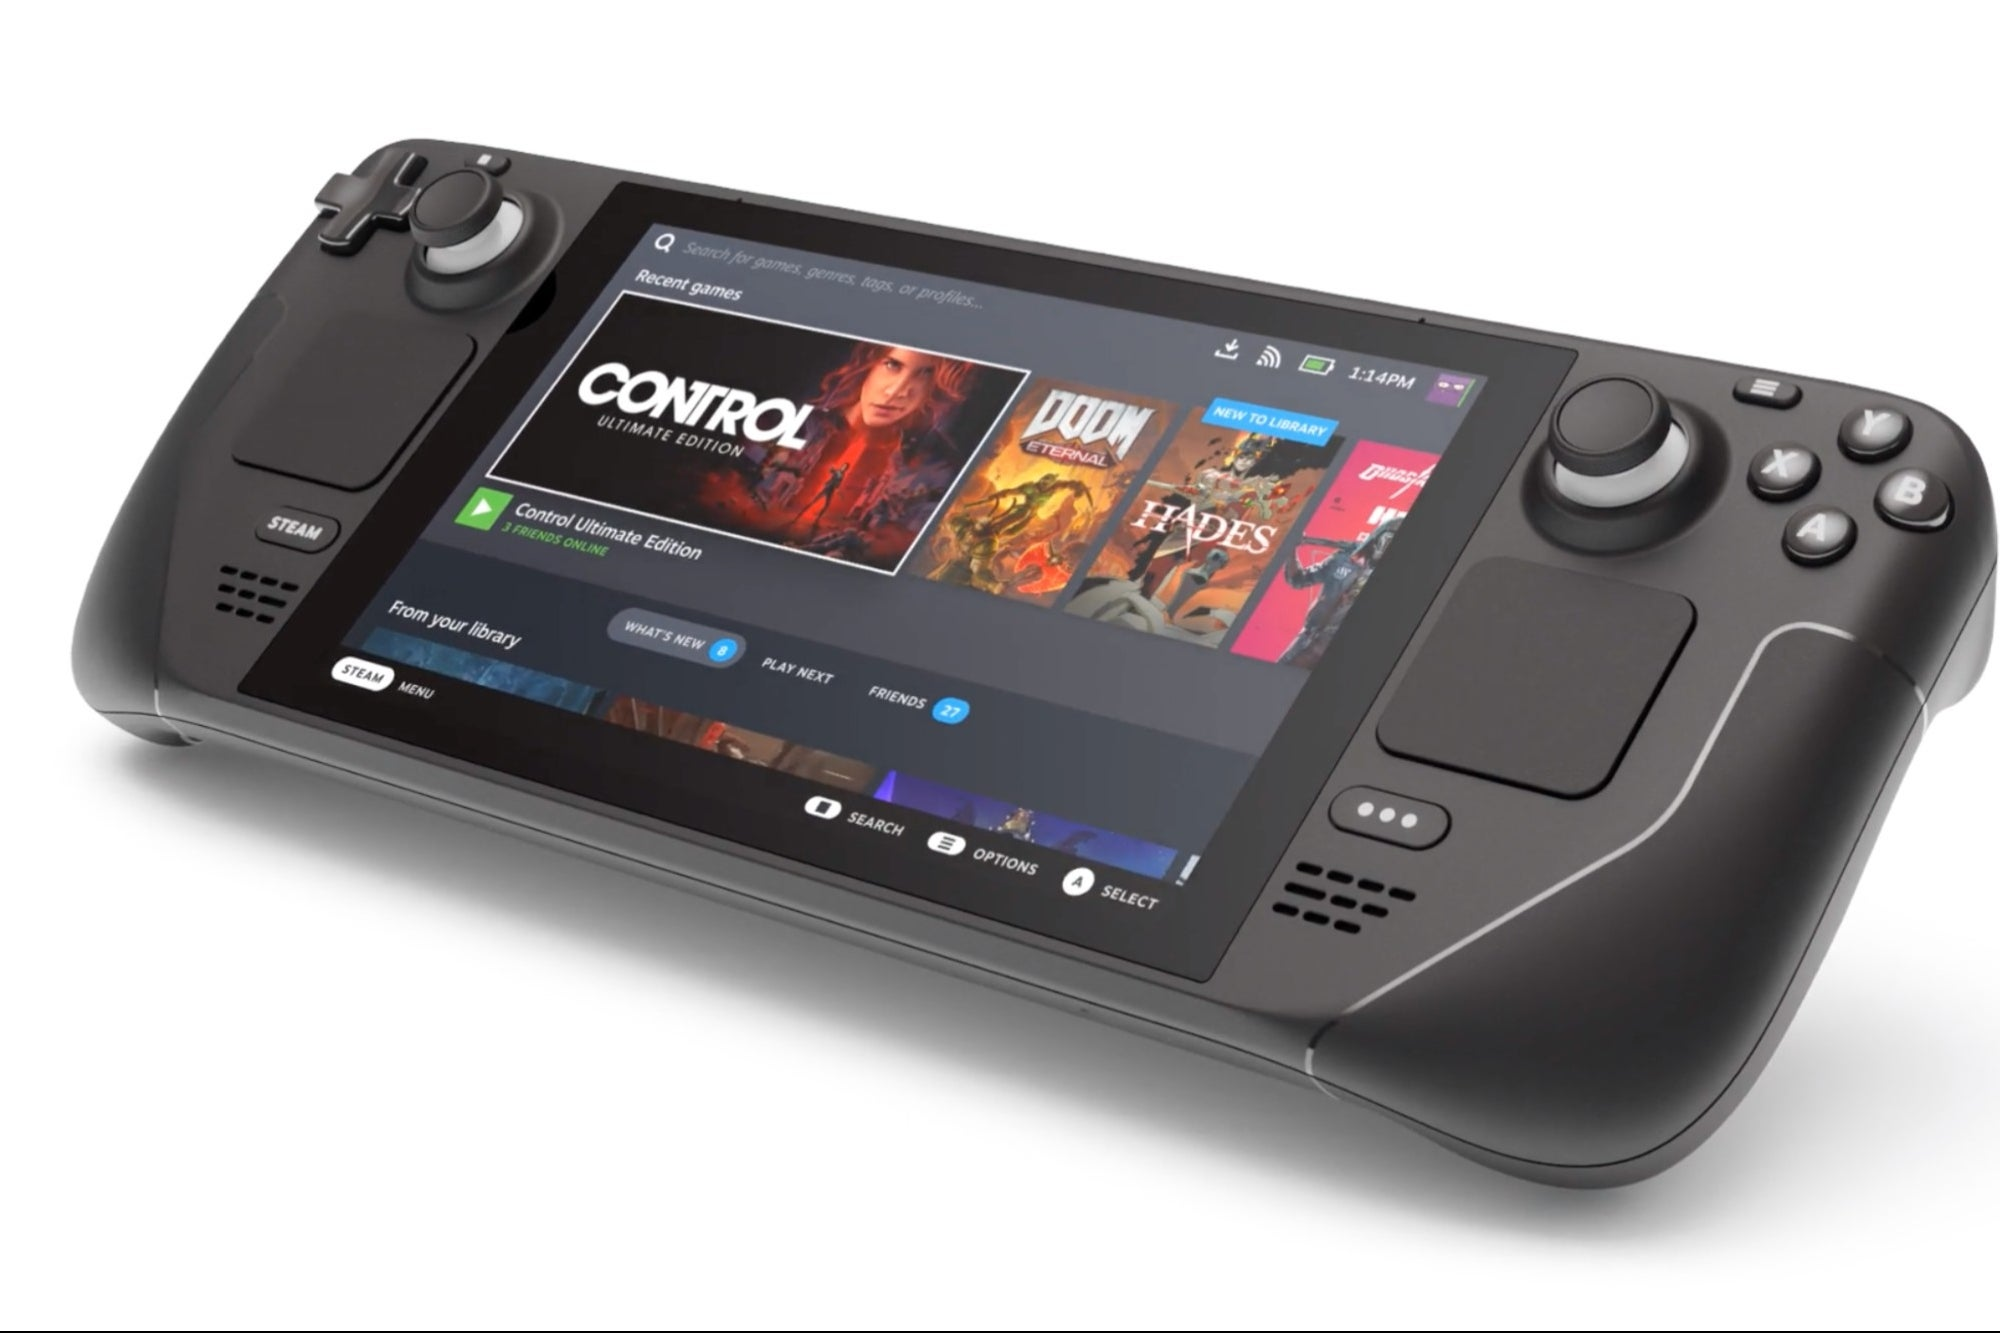 They present Steam Deck, a portable video game device similar to the Nintendo Switch, Digital Rumble, digitalrumble.com